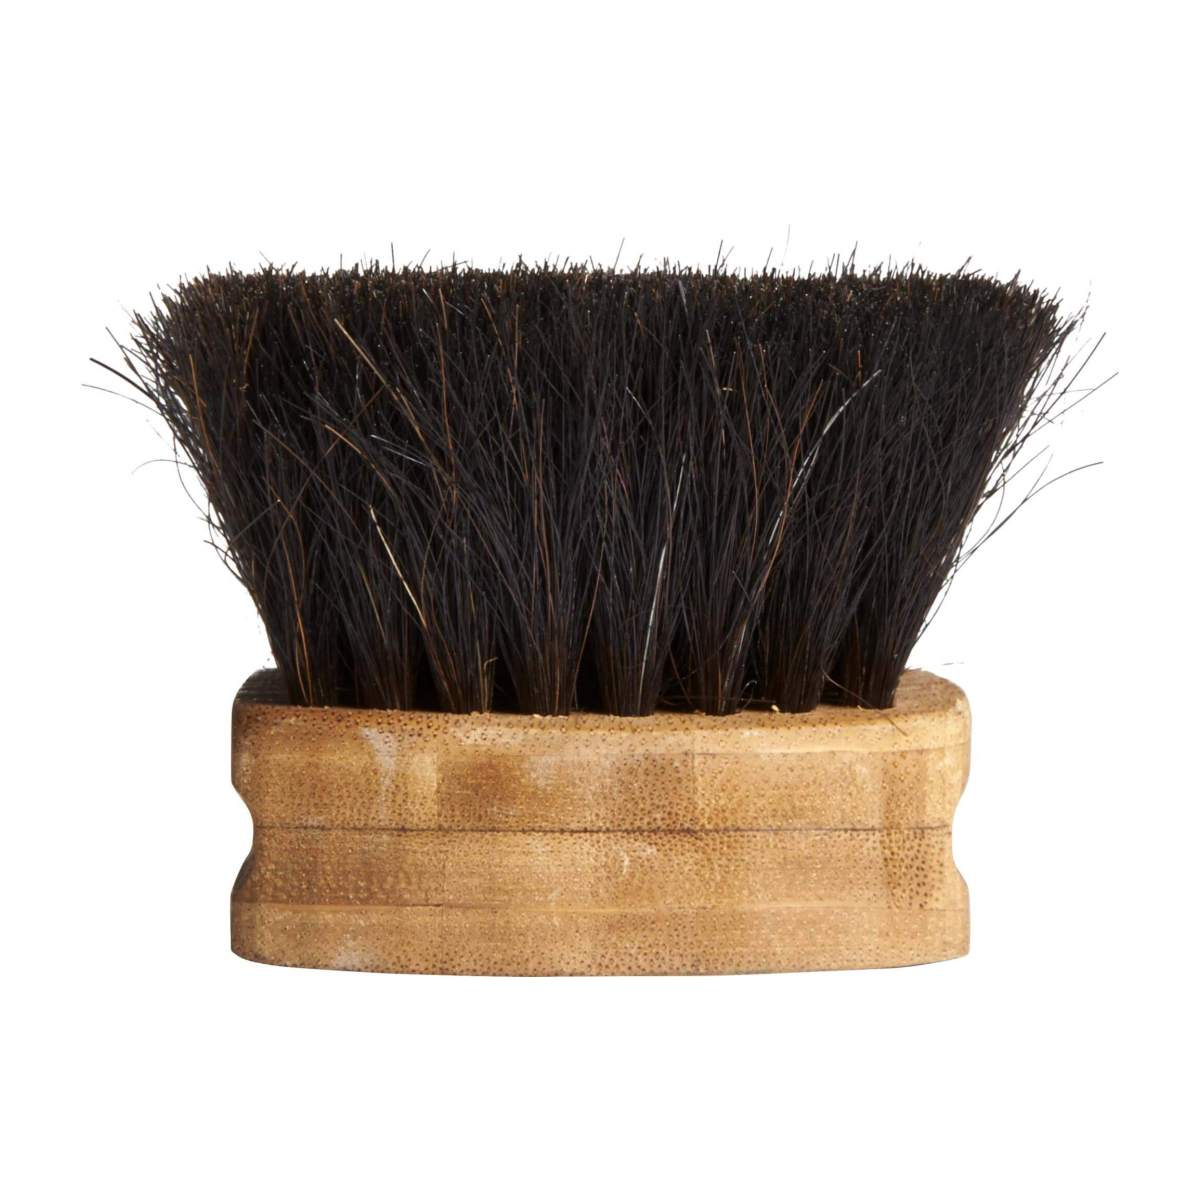 Cleaning brush n°3